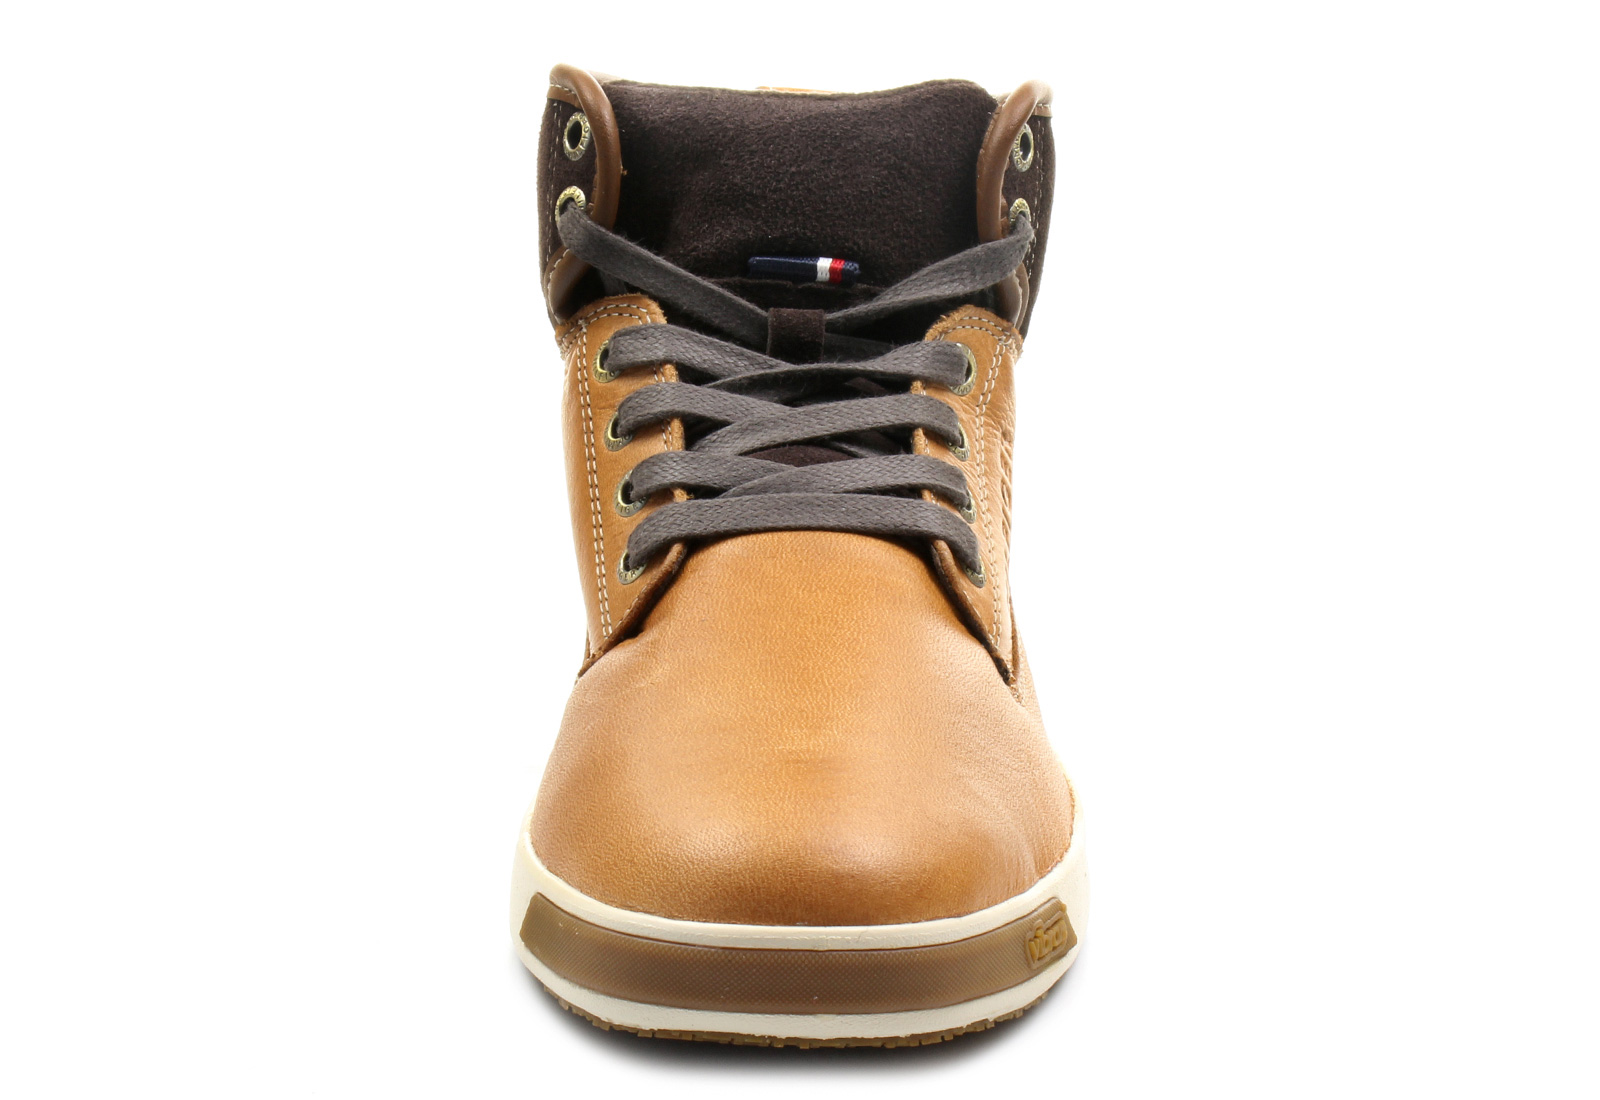 591f7bcd33a8e Tommy Hilfiger Shoes - Maverek 3cv - 15F-9825-906 - Online shop for ...